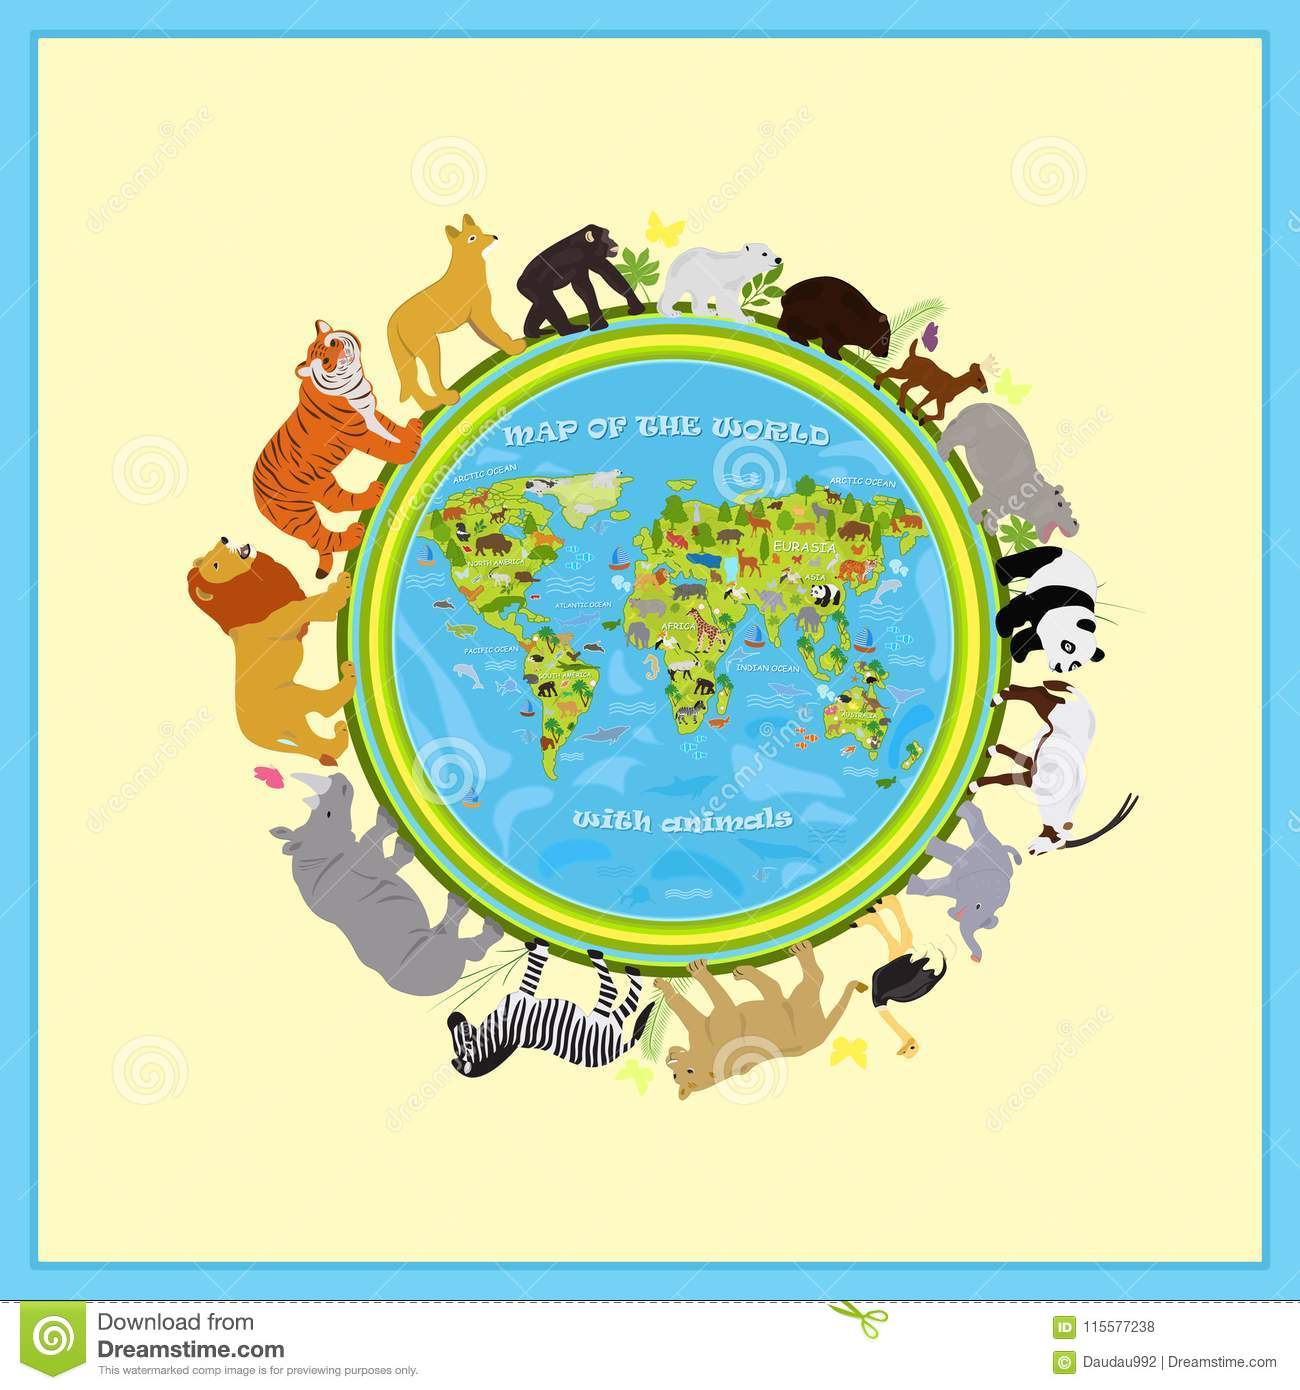 Vector map of land with animals around the planet stock vector download vector map of land with animals around the planet stock vector illustration of funny gumiabroncs Choice Image